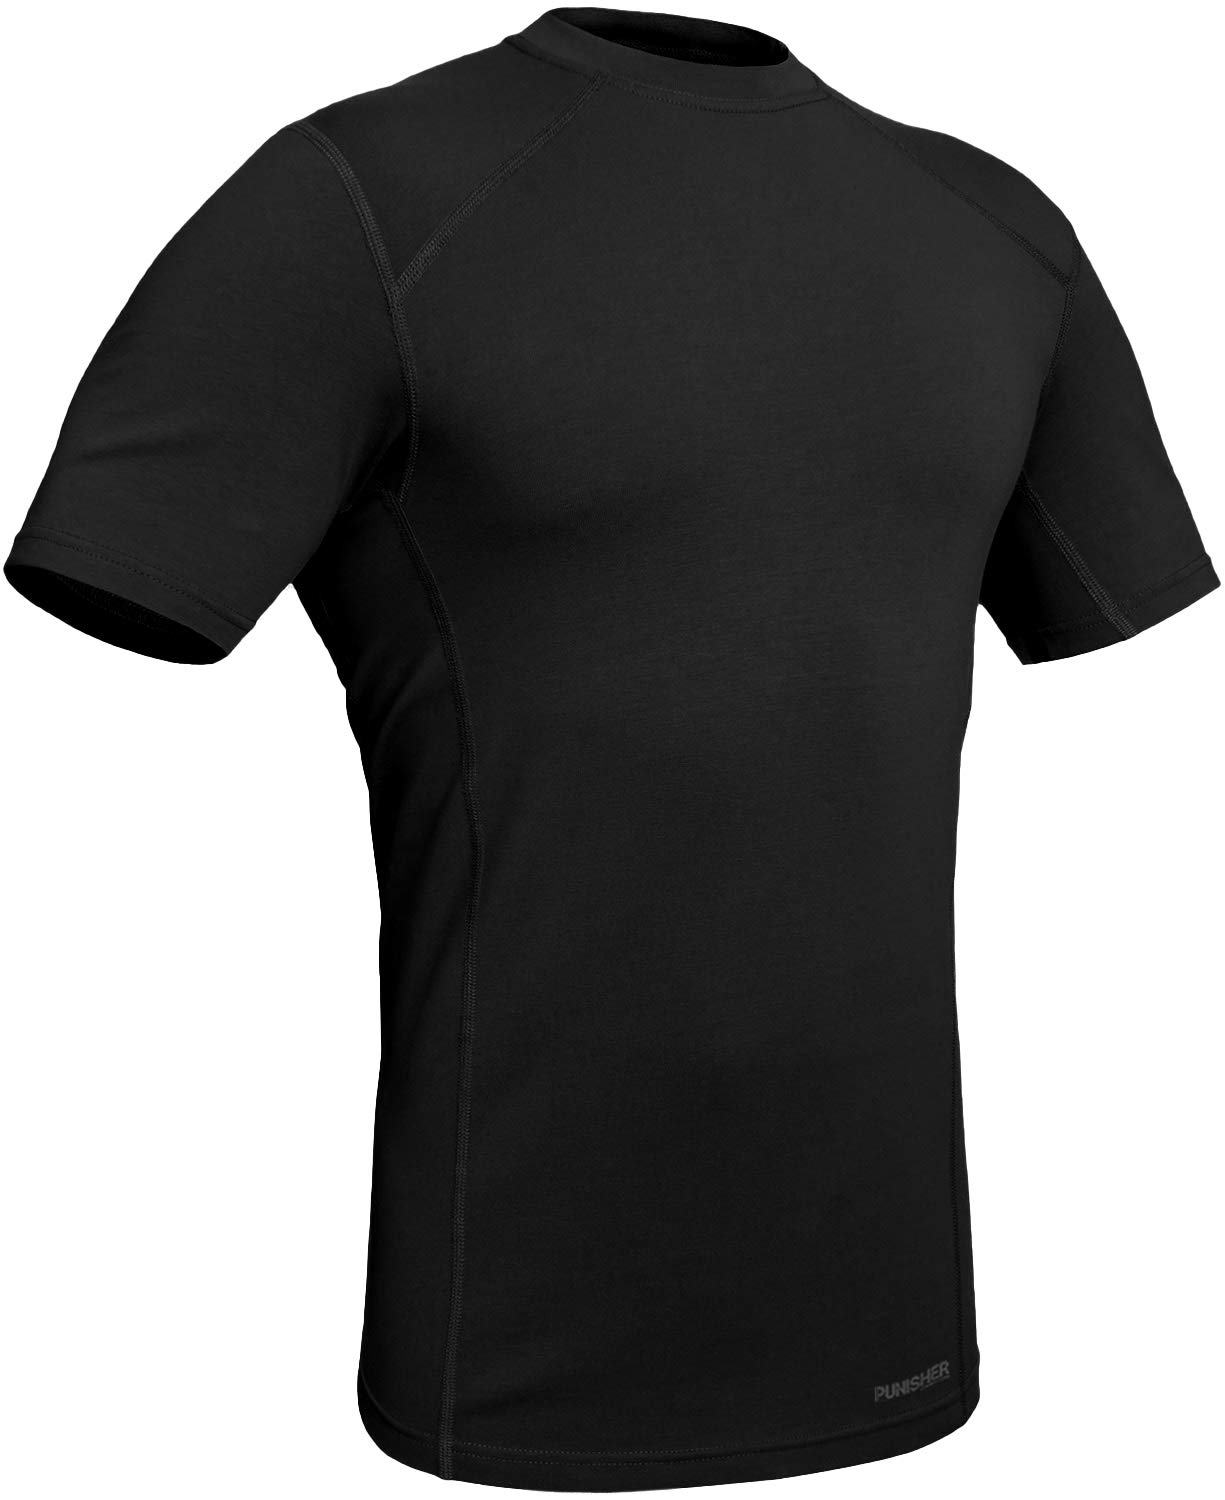 281Z Military Stretch Cotton Underwear T-Shirt - Tactical Hiking Outdoor - Punisher Combat Line (Black, Medium) by 281Z